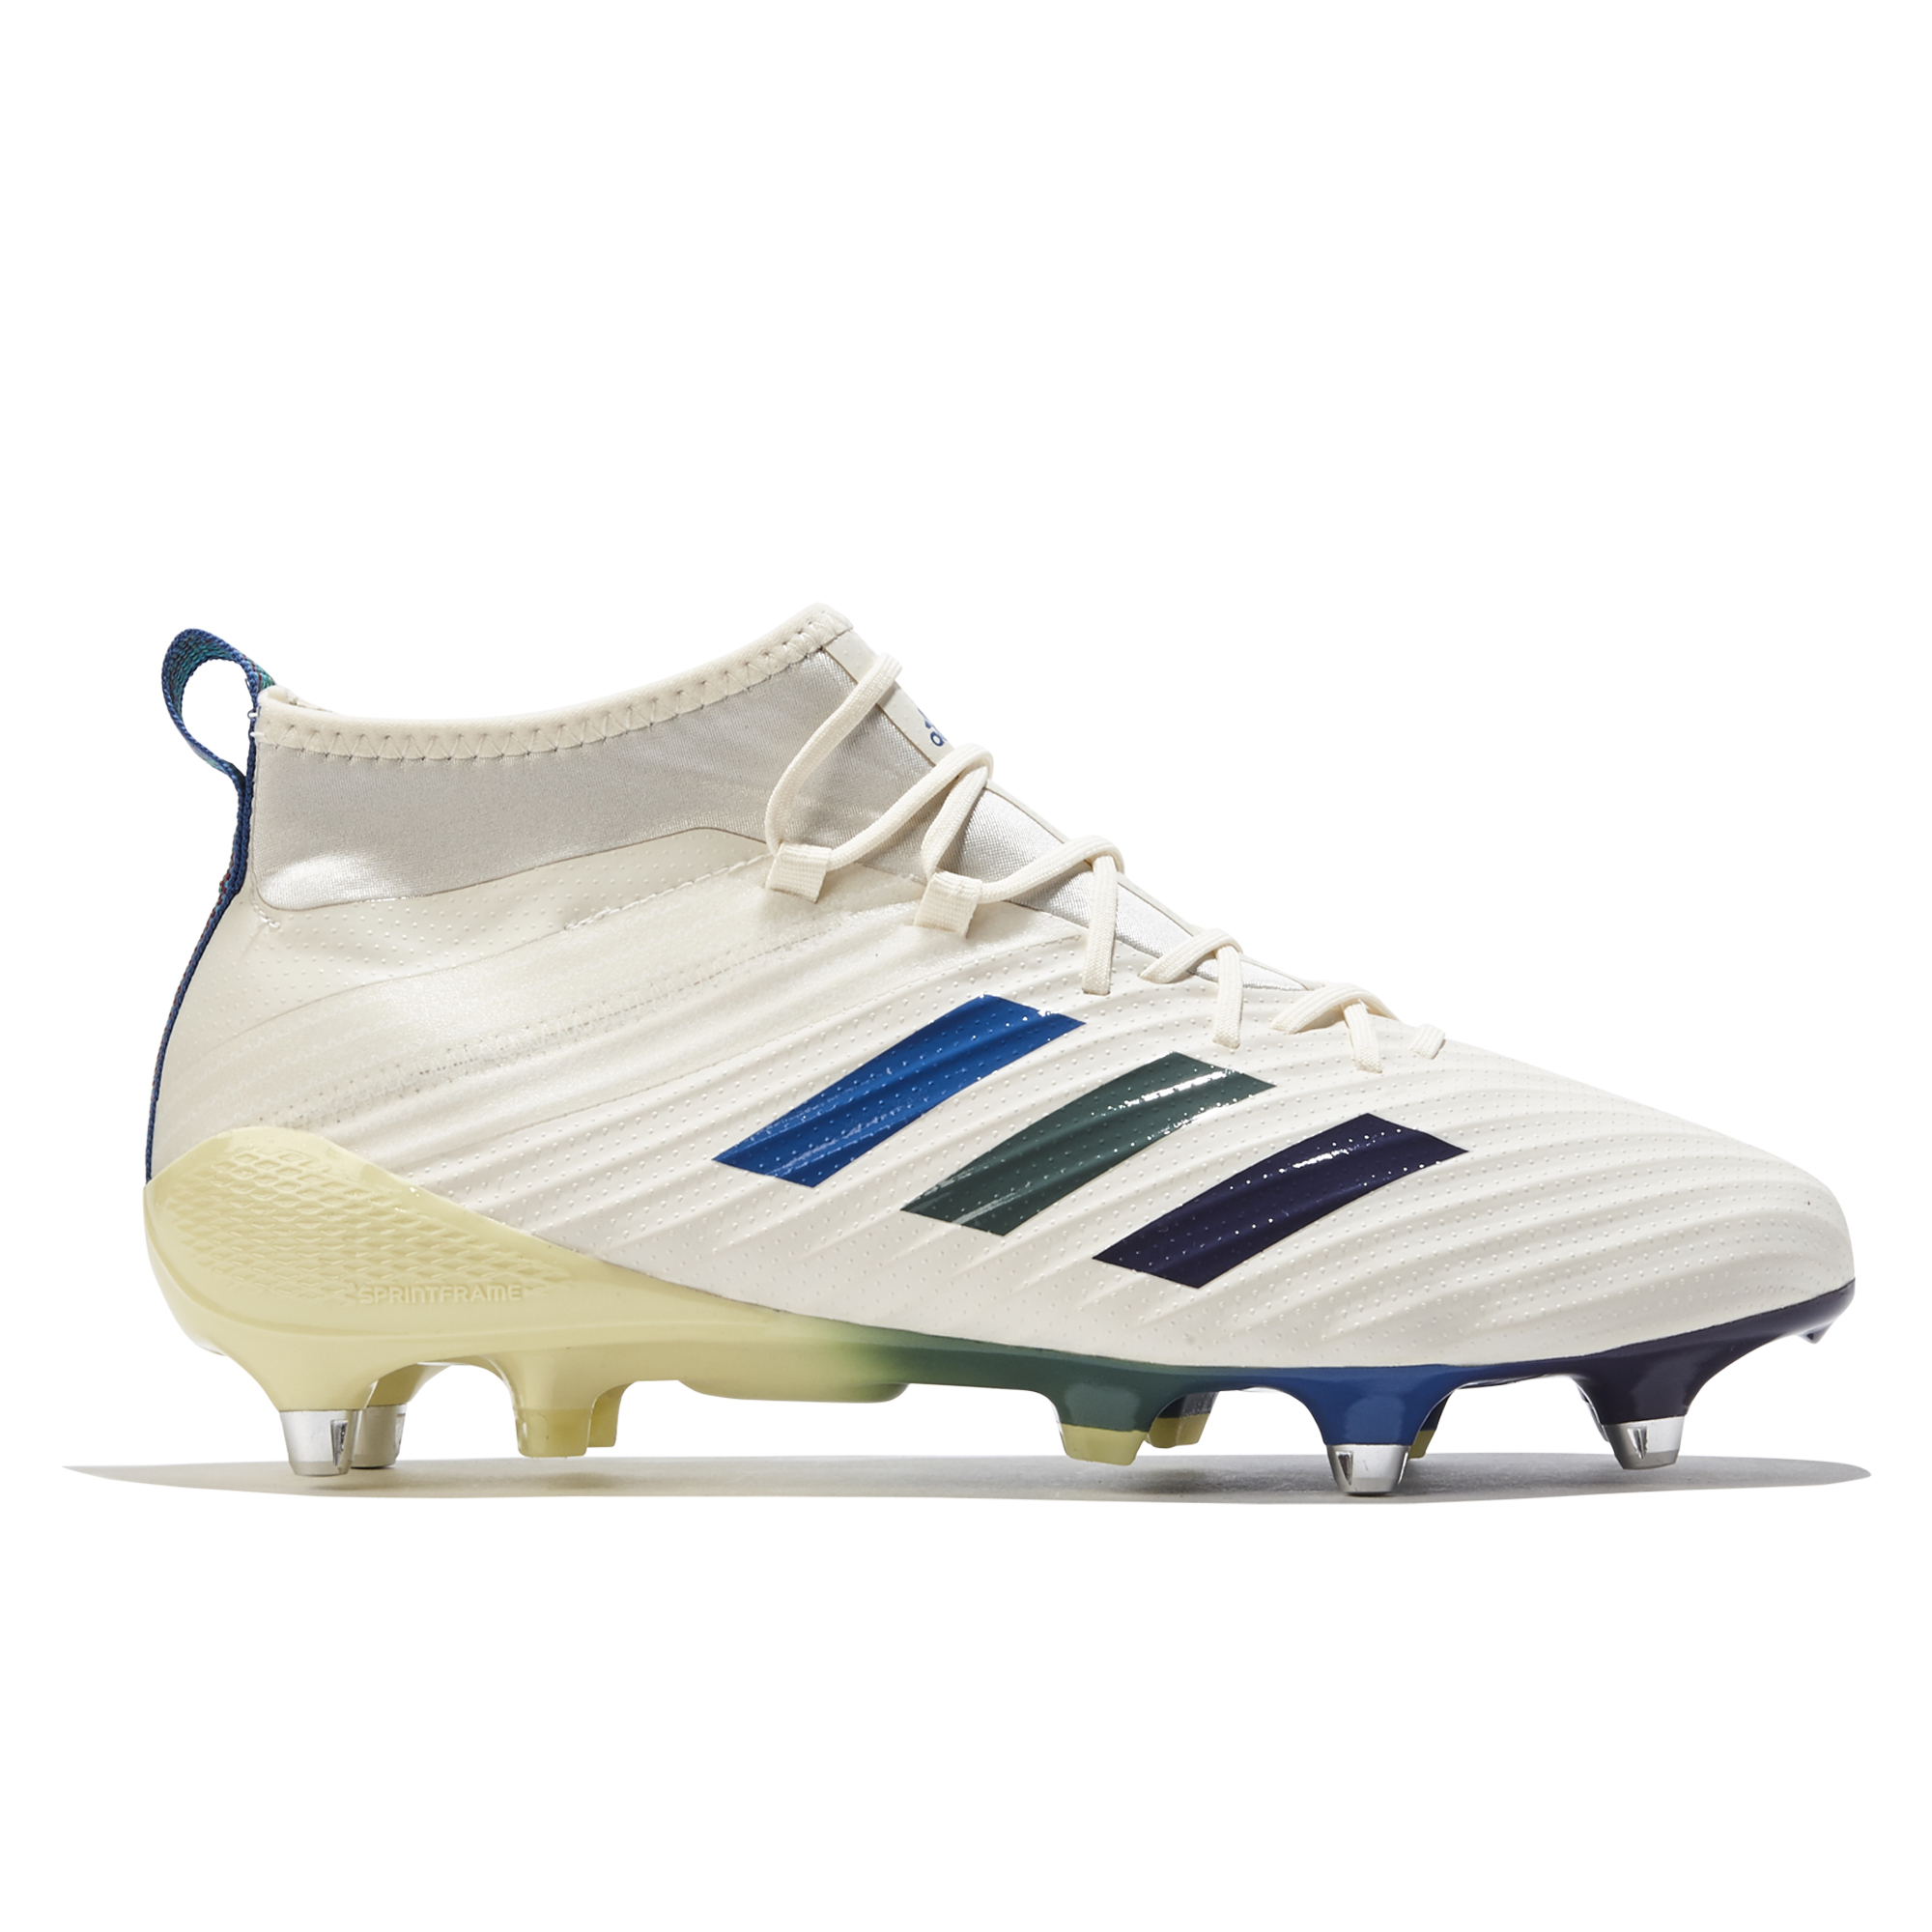 """Image of """"adidas Predator Flare - Soft Ground Rugby Boot - Cream White/Ice Yellow/Trace Green"""""""